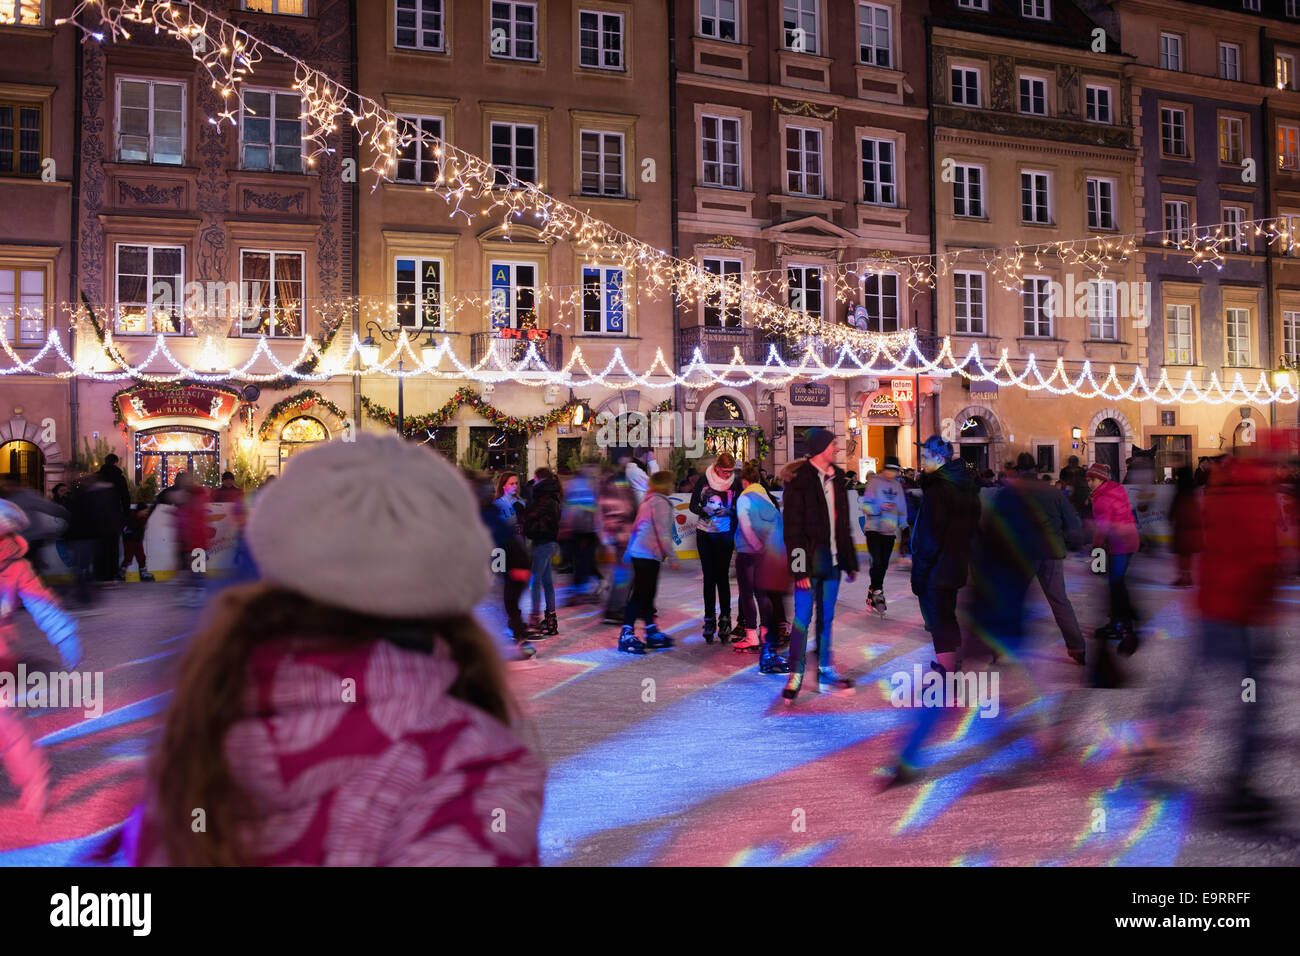 People skating on ice rink during Christmas Time in the Old Town Square of Warsaw, Poland. - Stock Image